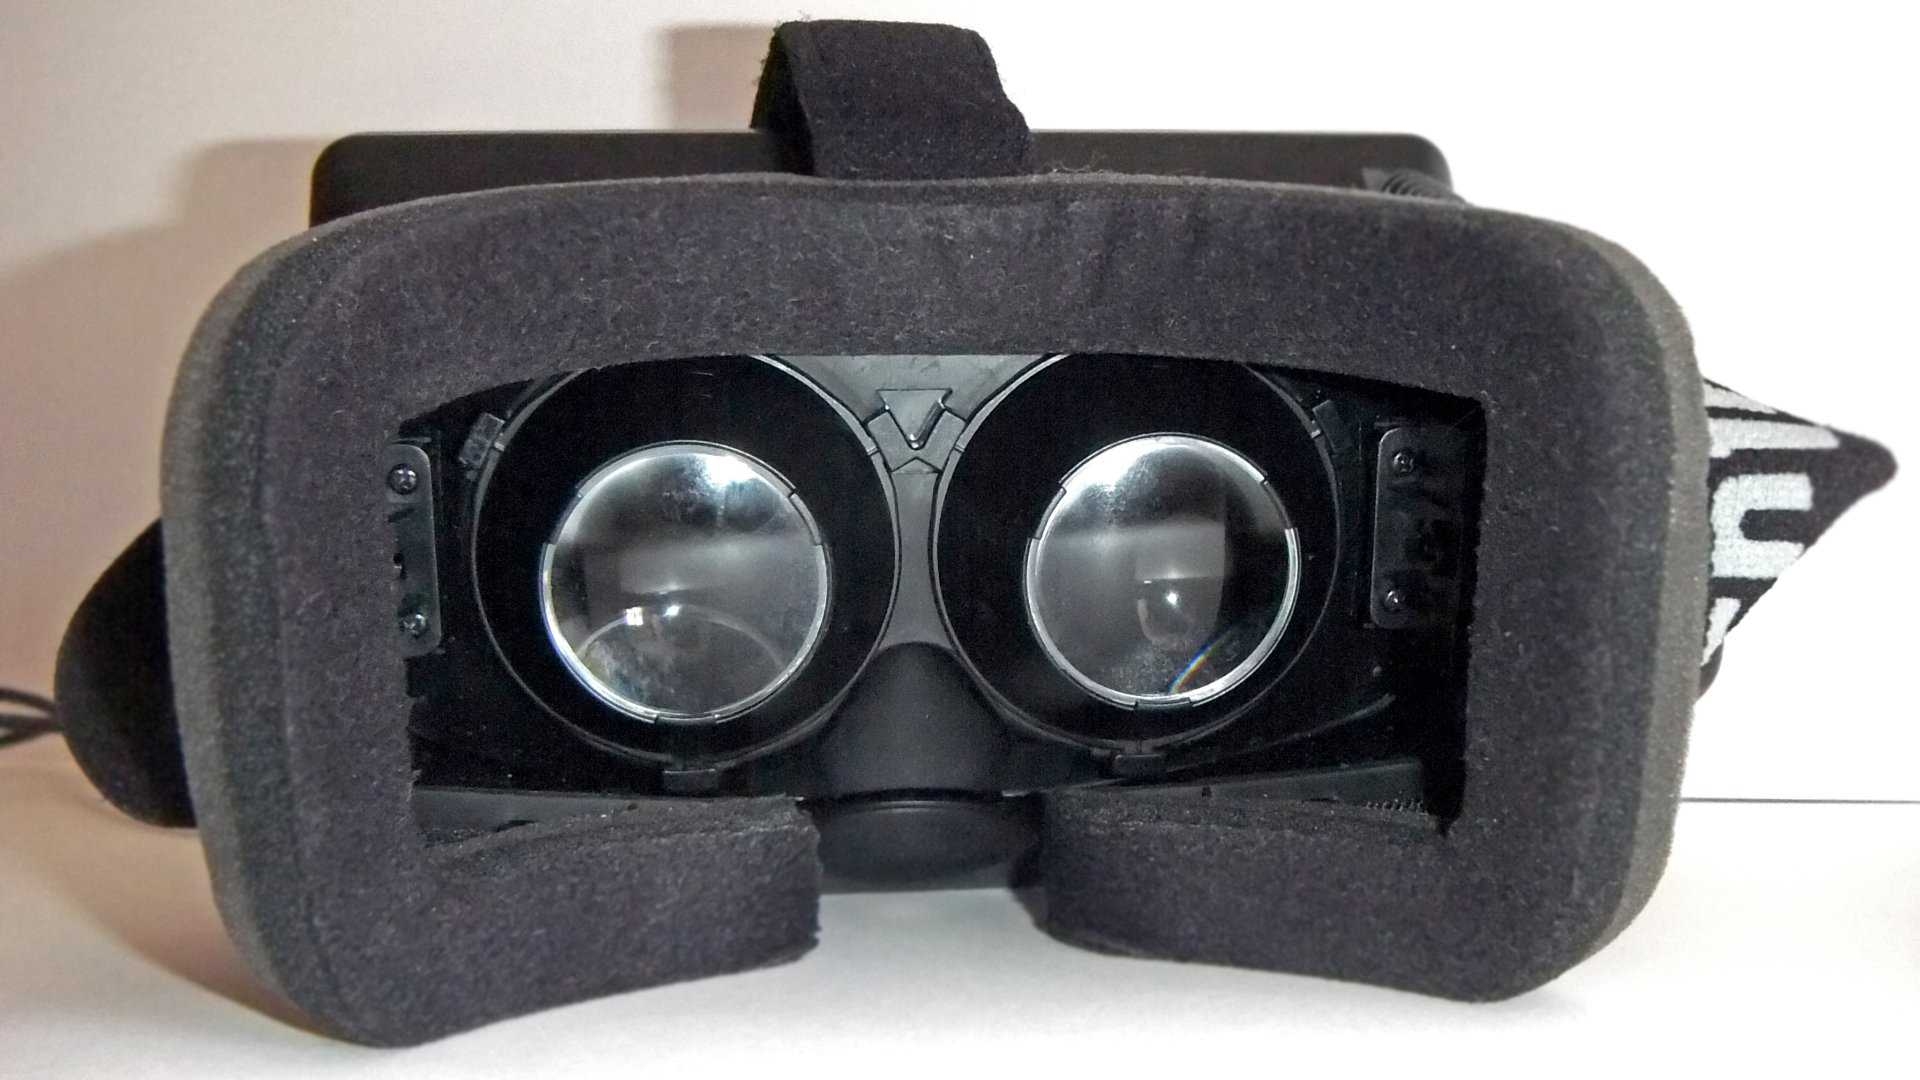 Oculus Rift Development Kit 1